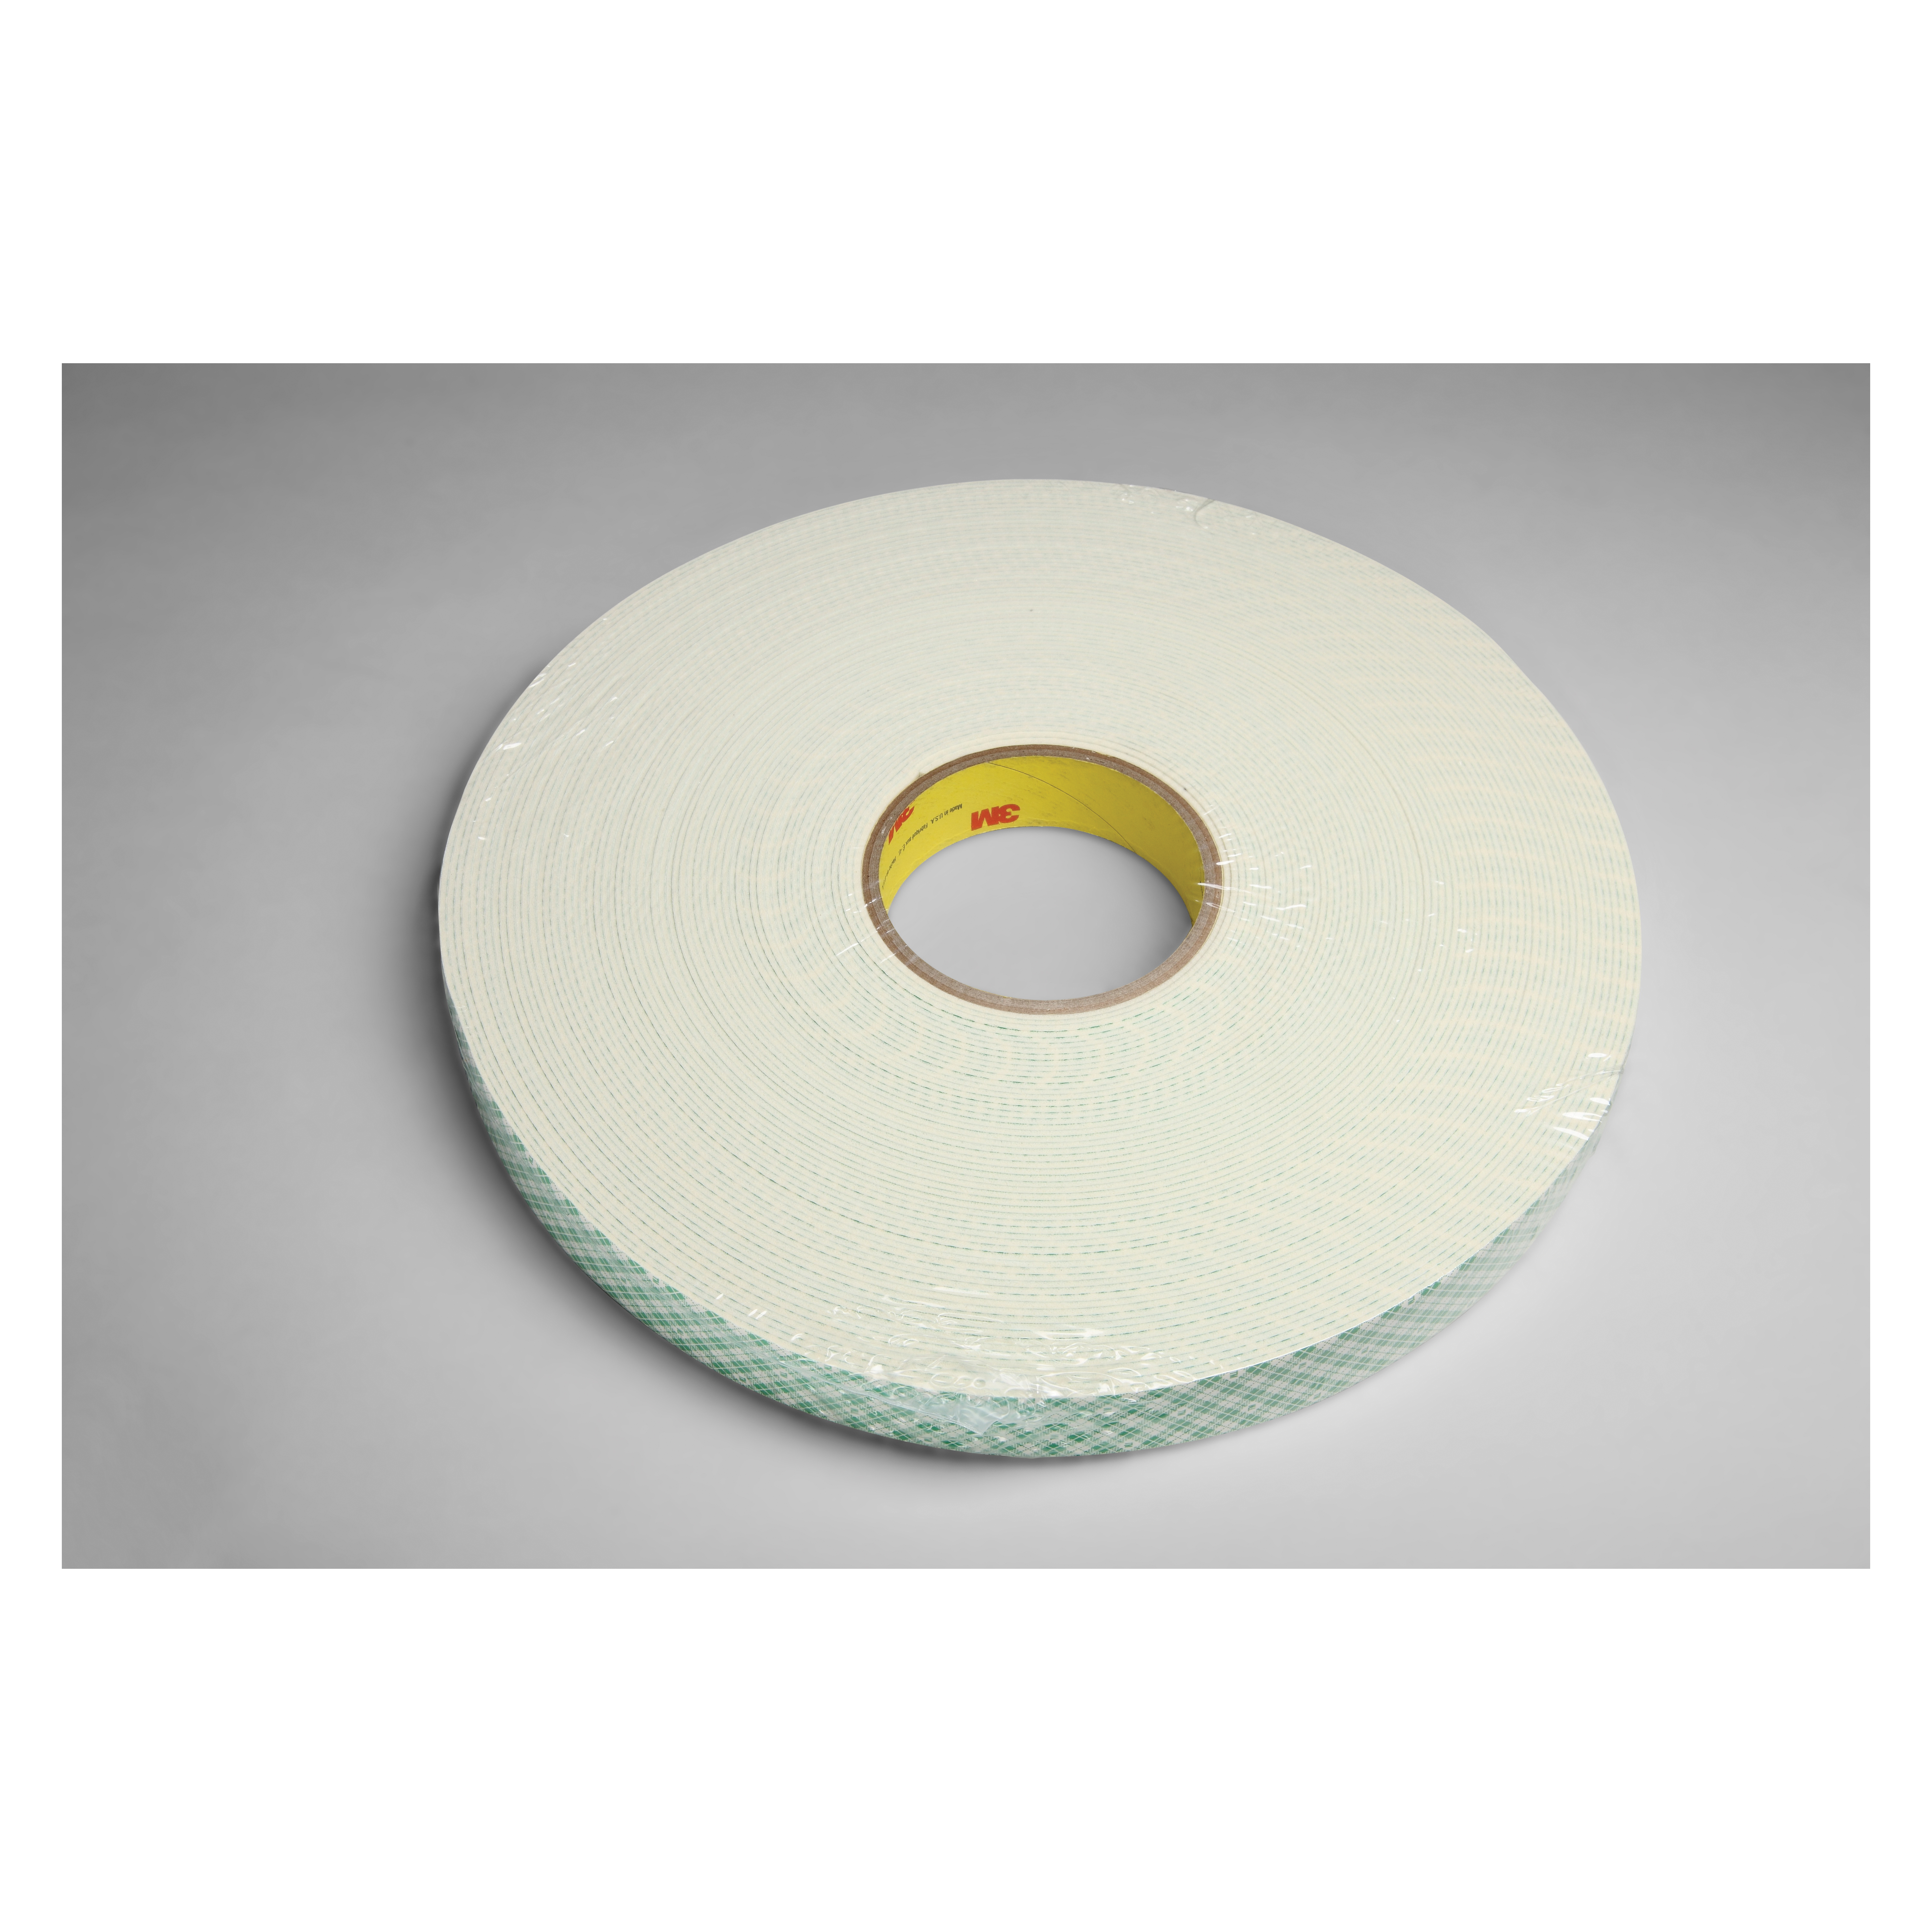 3M™ 021200-03402 Single Coated Foam Tape, 36 yd L x 1 in W, 62 mil THK, Acrylic Adhesive, Urethane Foam Backing, Natural